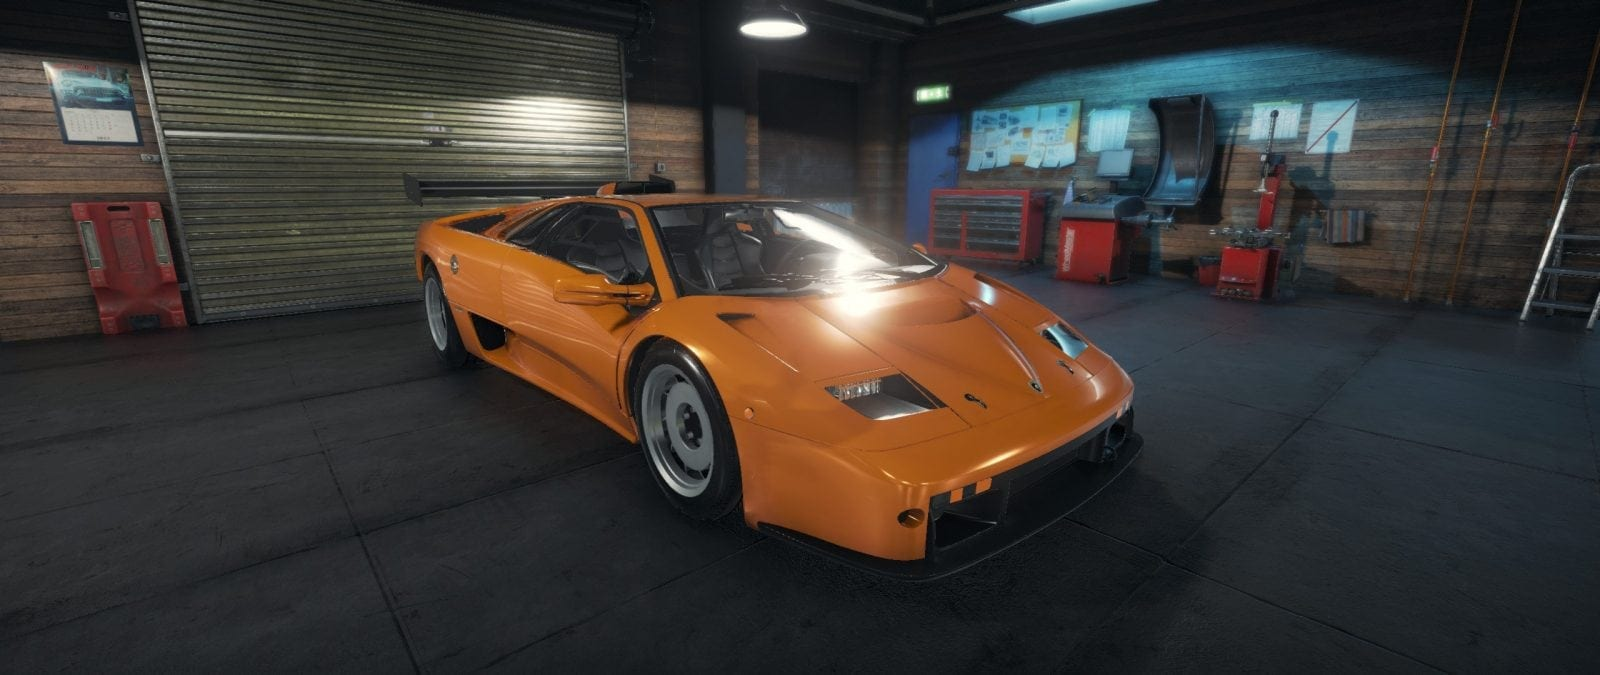 Lamborghini Diablo Sv Need For Speed Most Wanted | Wallpapers Memes